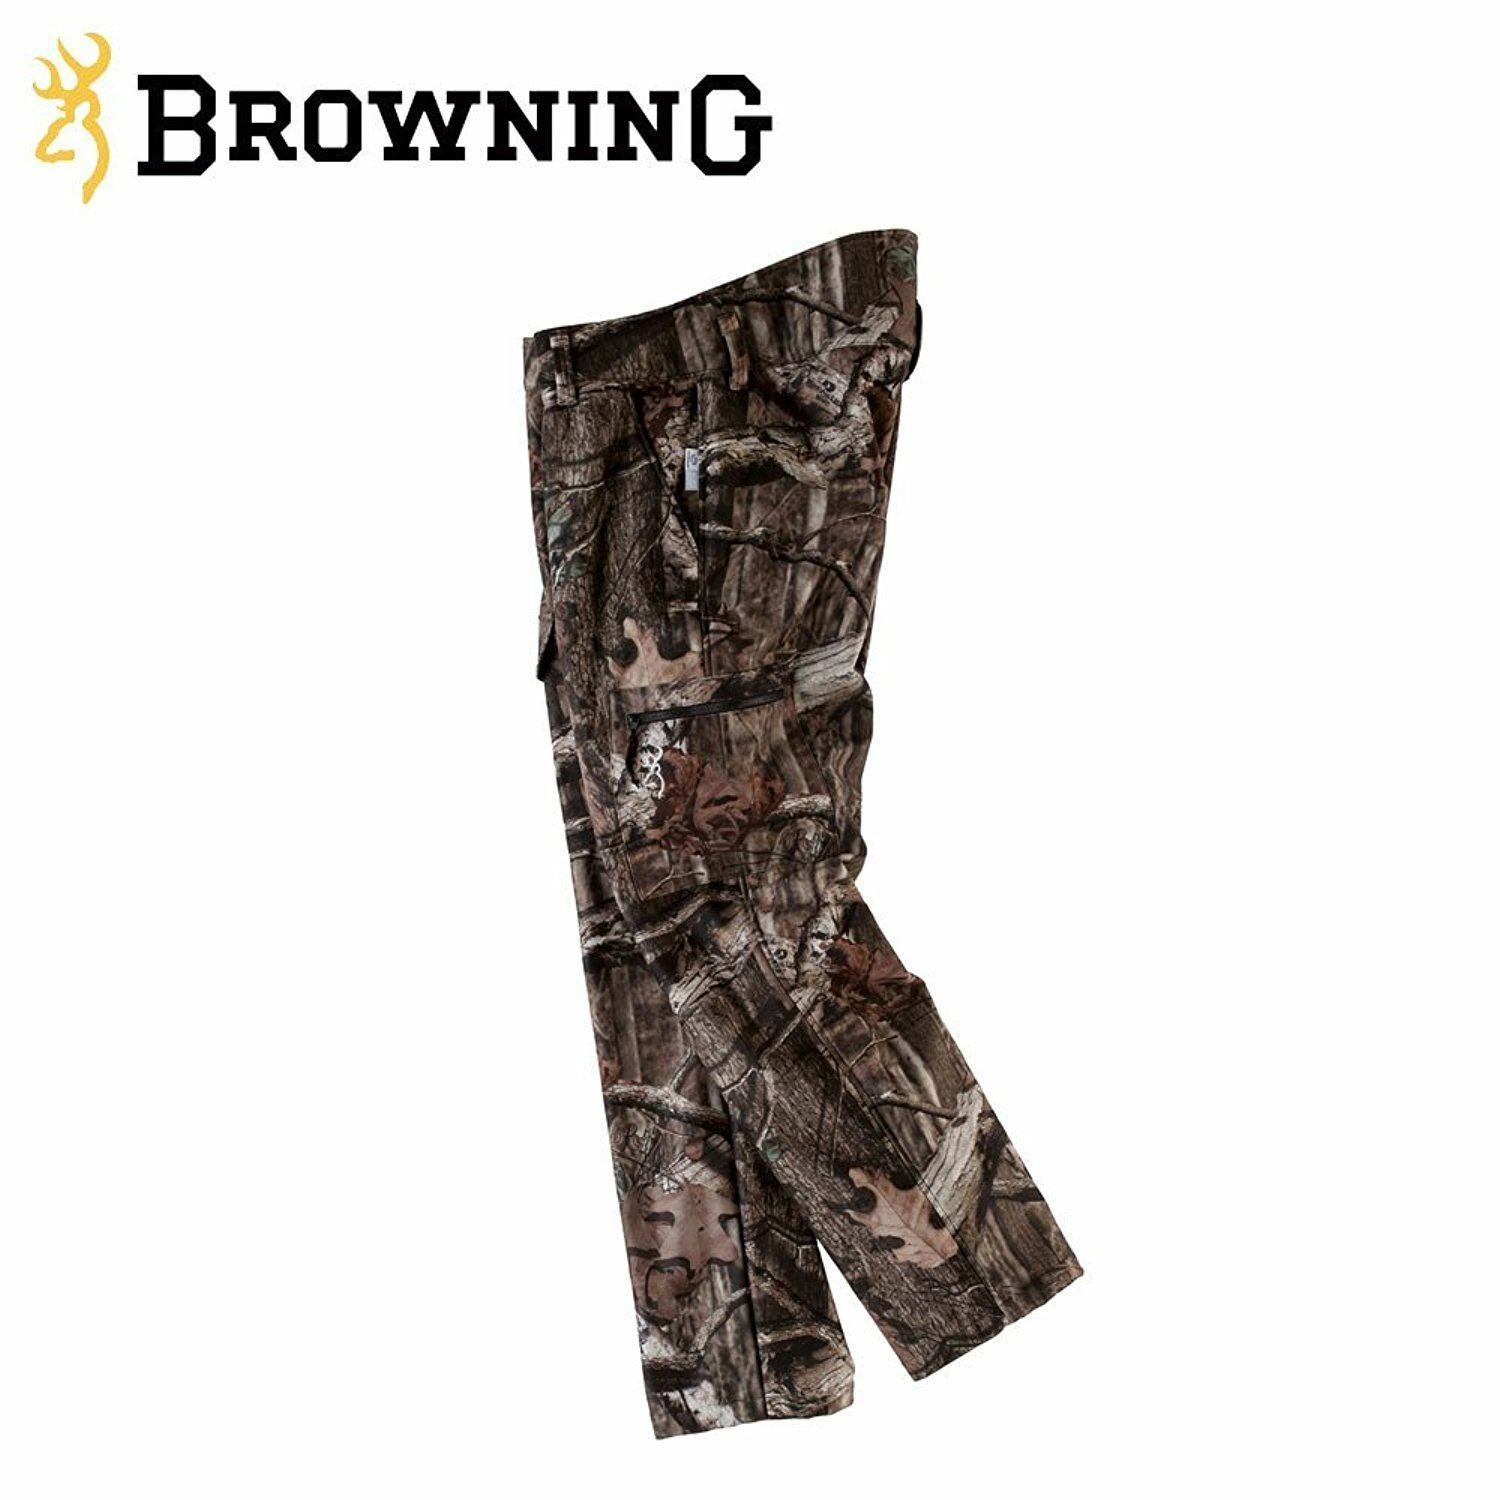 Browning Pant Hells Canyon Odorsmart Moinf Size 3XL (Hunting Camo)